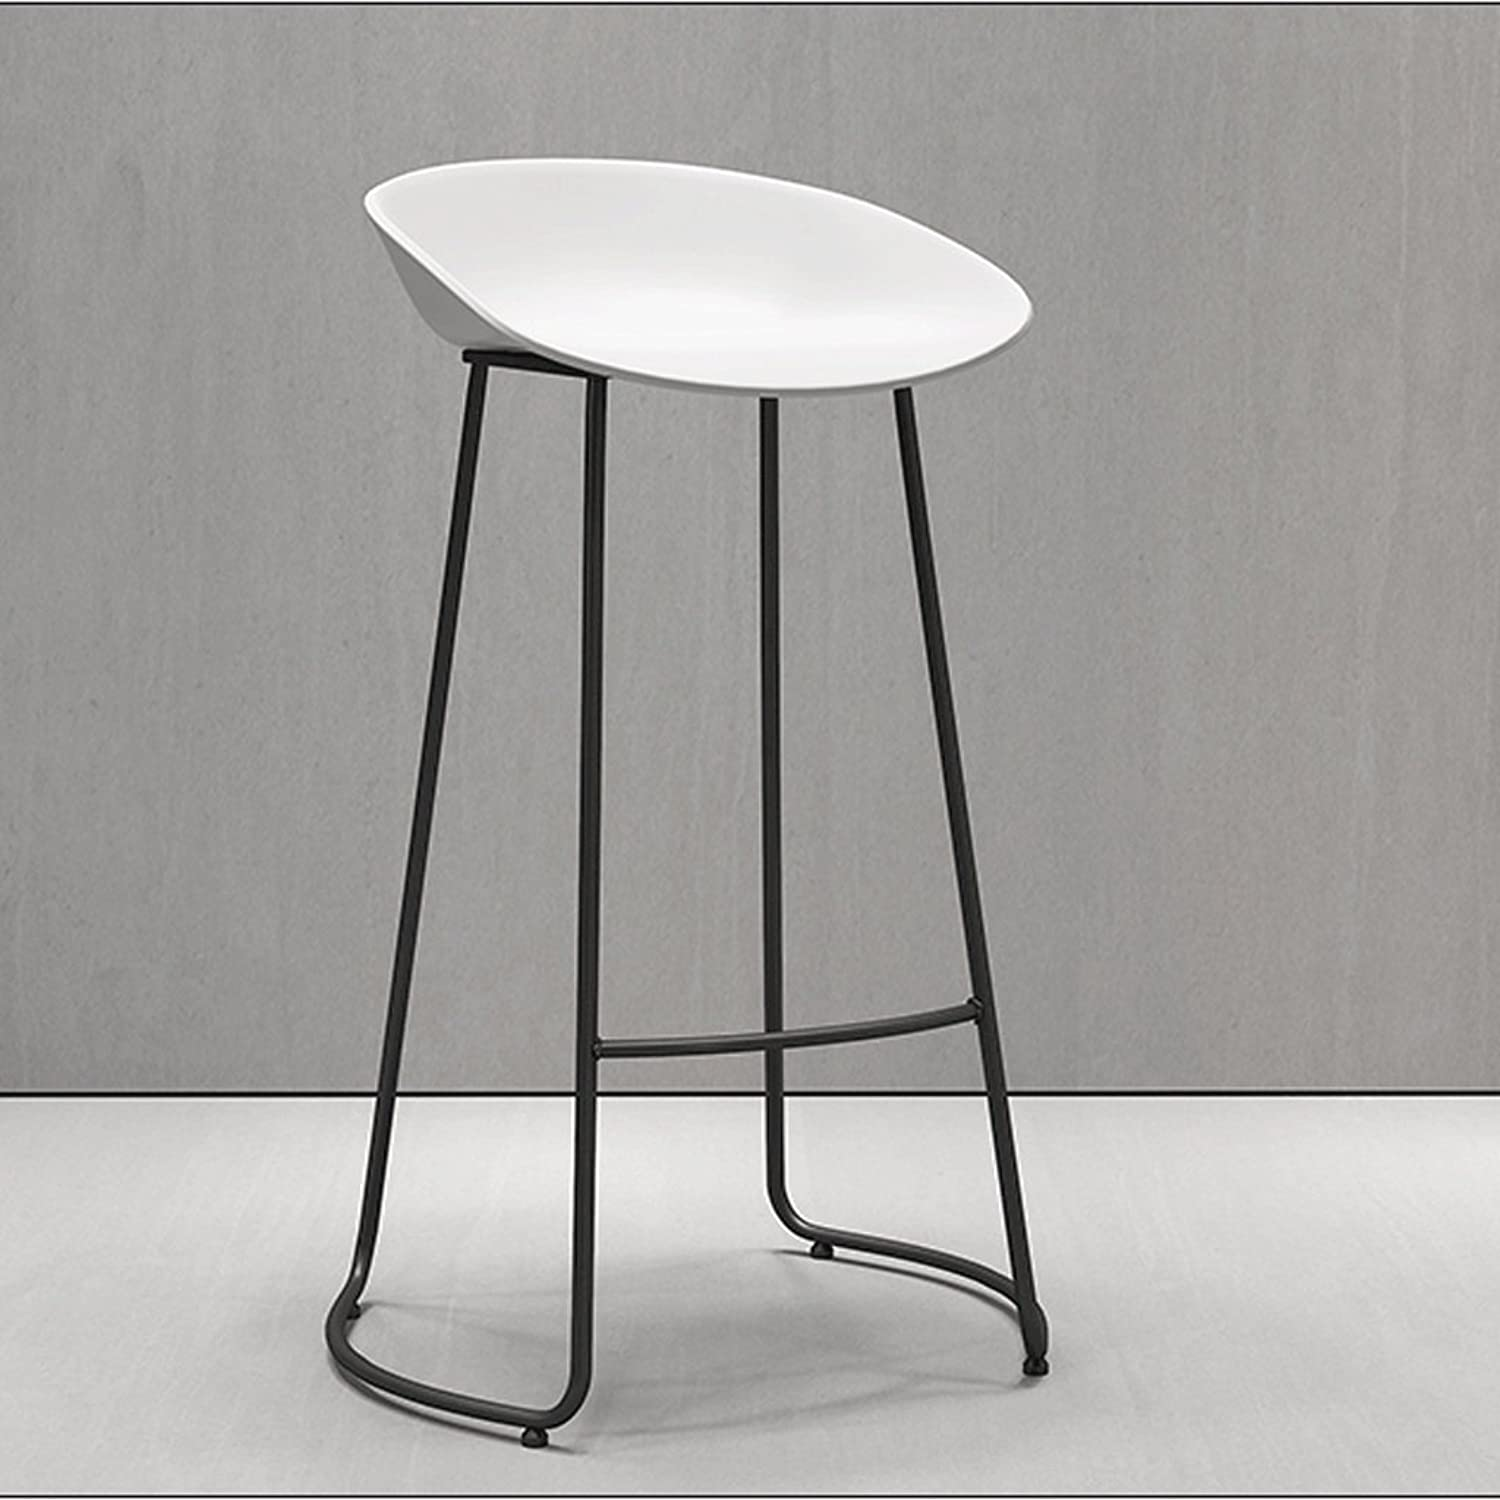 JHEY Nordic Style Simple Fashion bar Stool Casual Cafe Front Desk Stool (color   White)